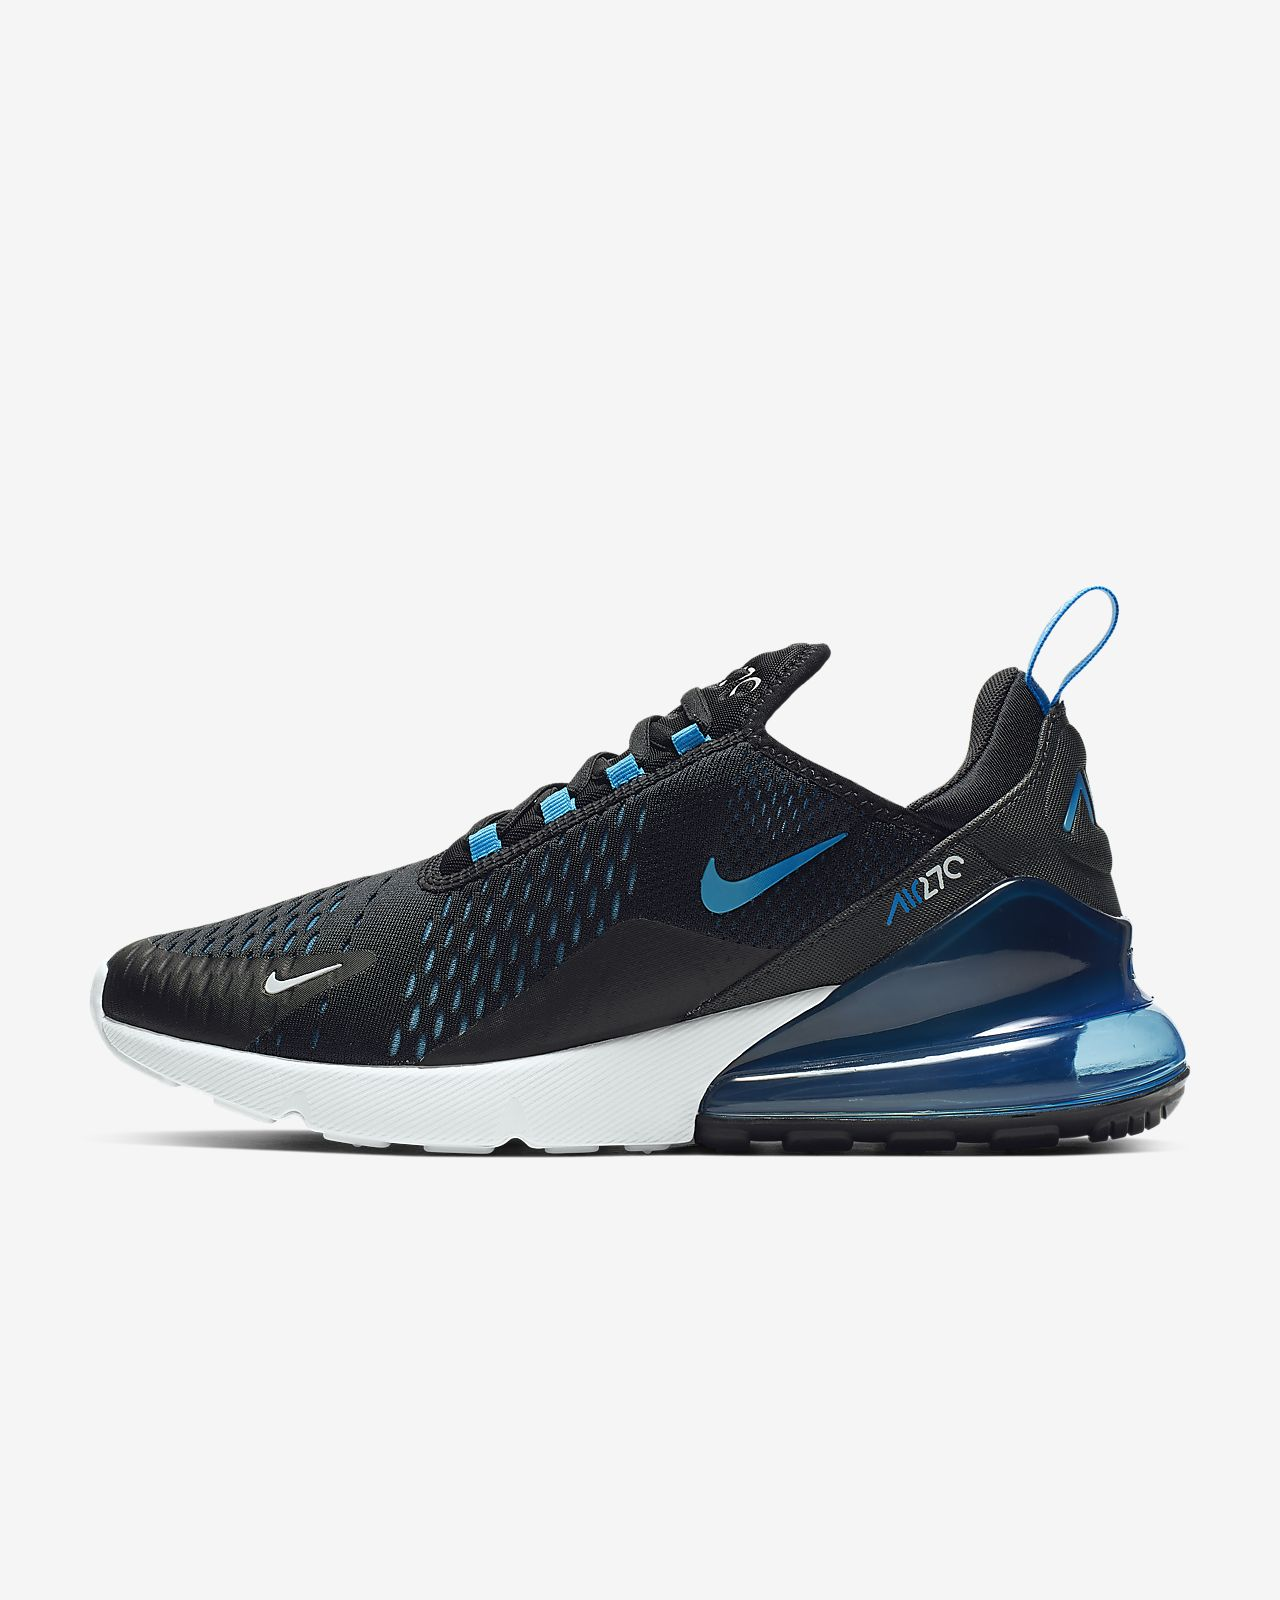 lowest price 170c7 31634 ... Nike Air Max 270 Men s Shoe